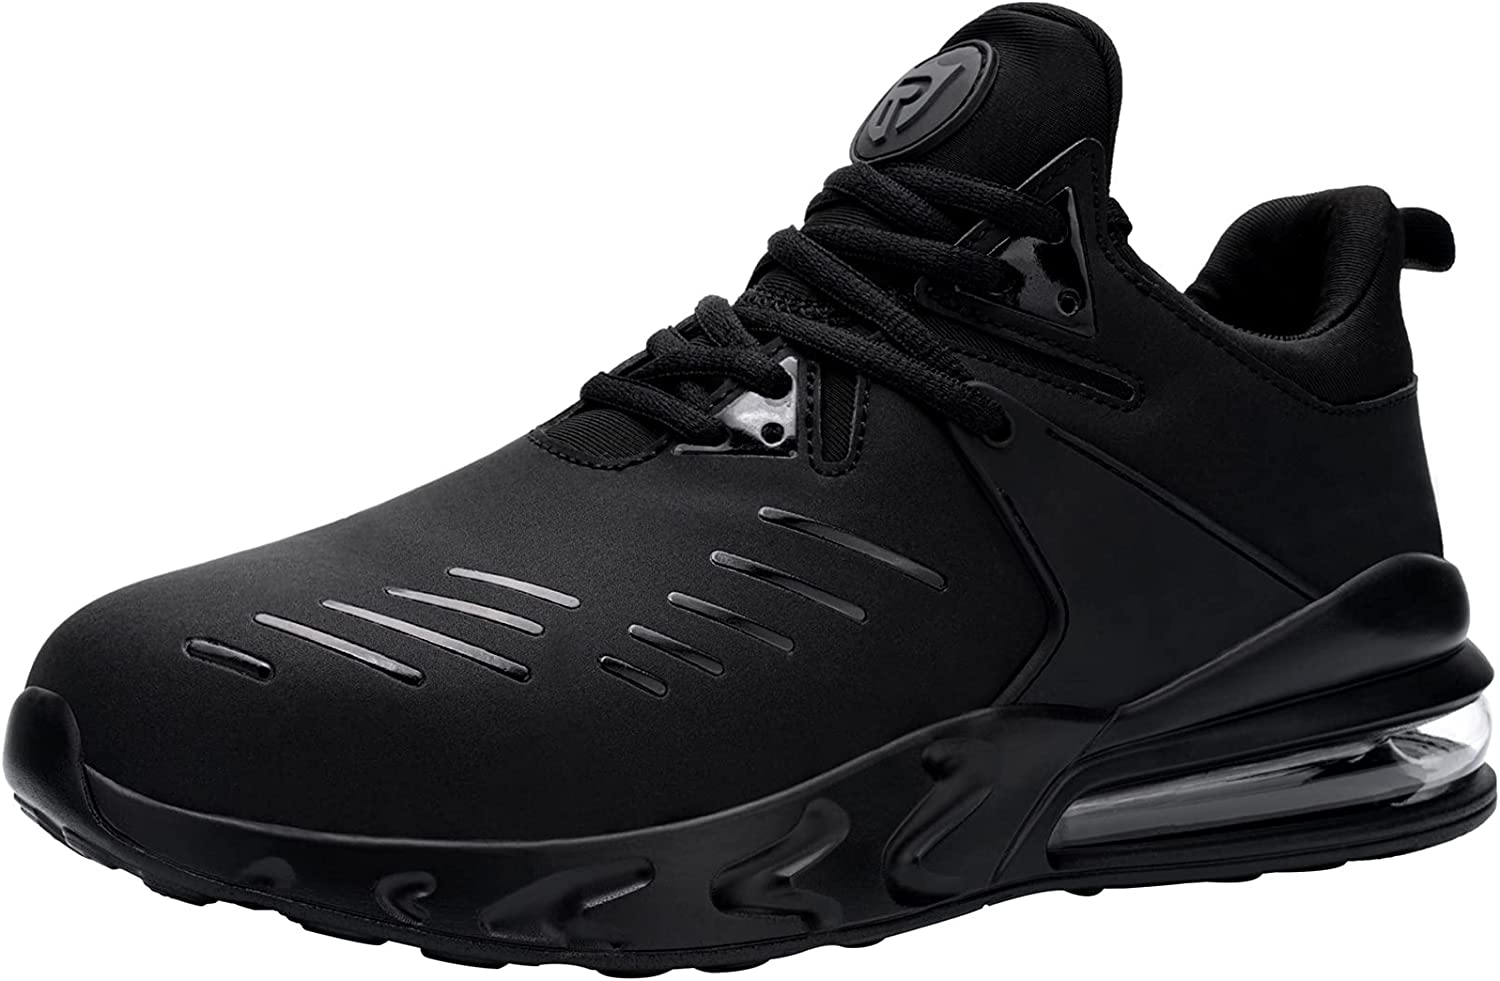 LARNMERN Steel Toe Shoes for Men Lightweight Work Safety Sneakers Industrial Construction Footwear Breathable Air Cushion Safety Toe Working Shoes Fashion Black